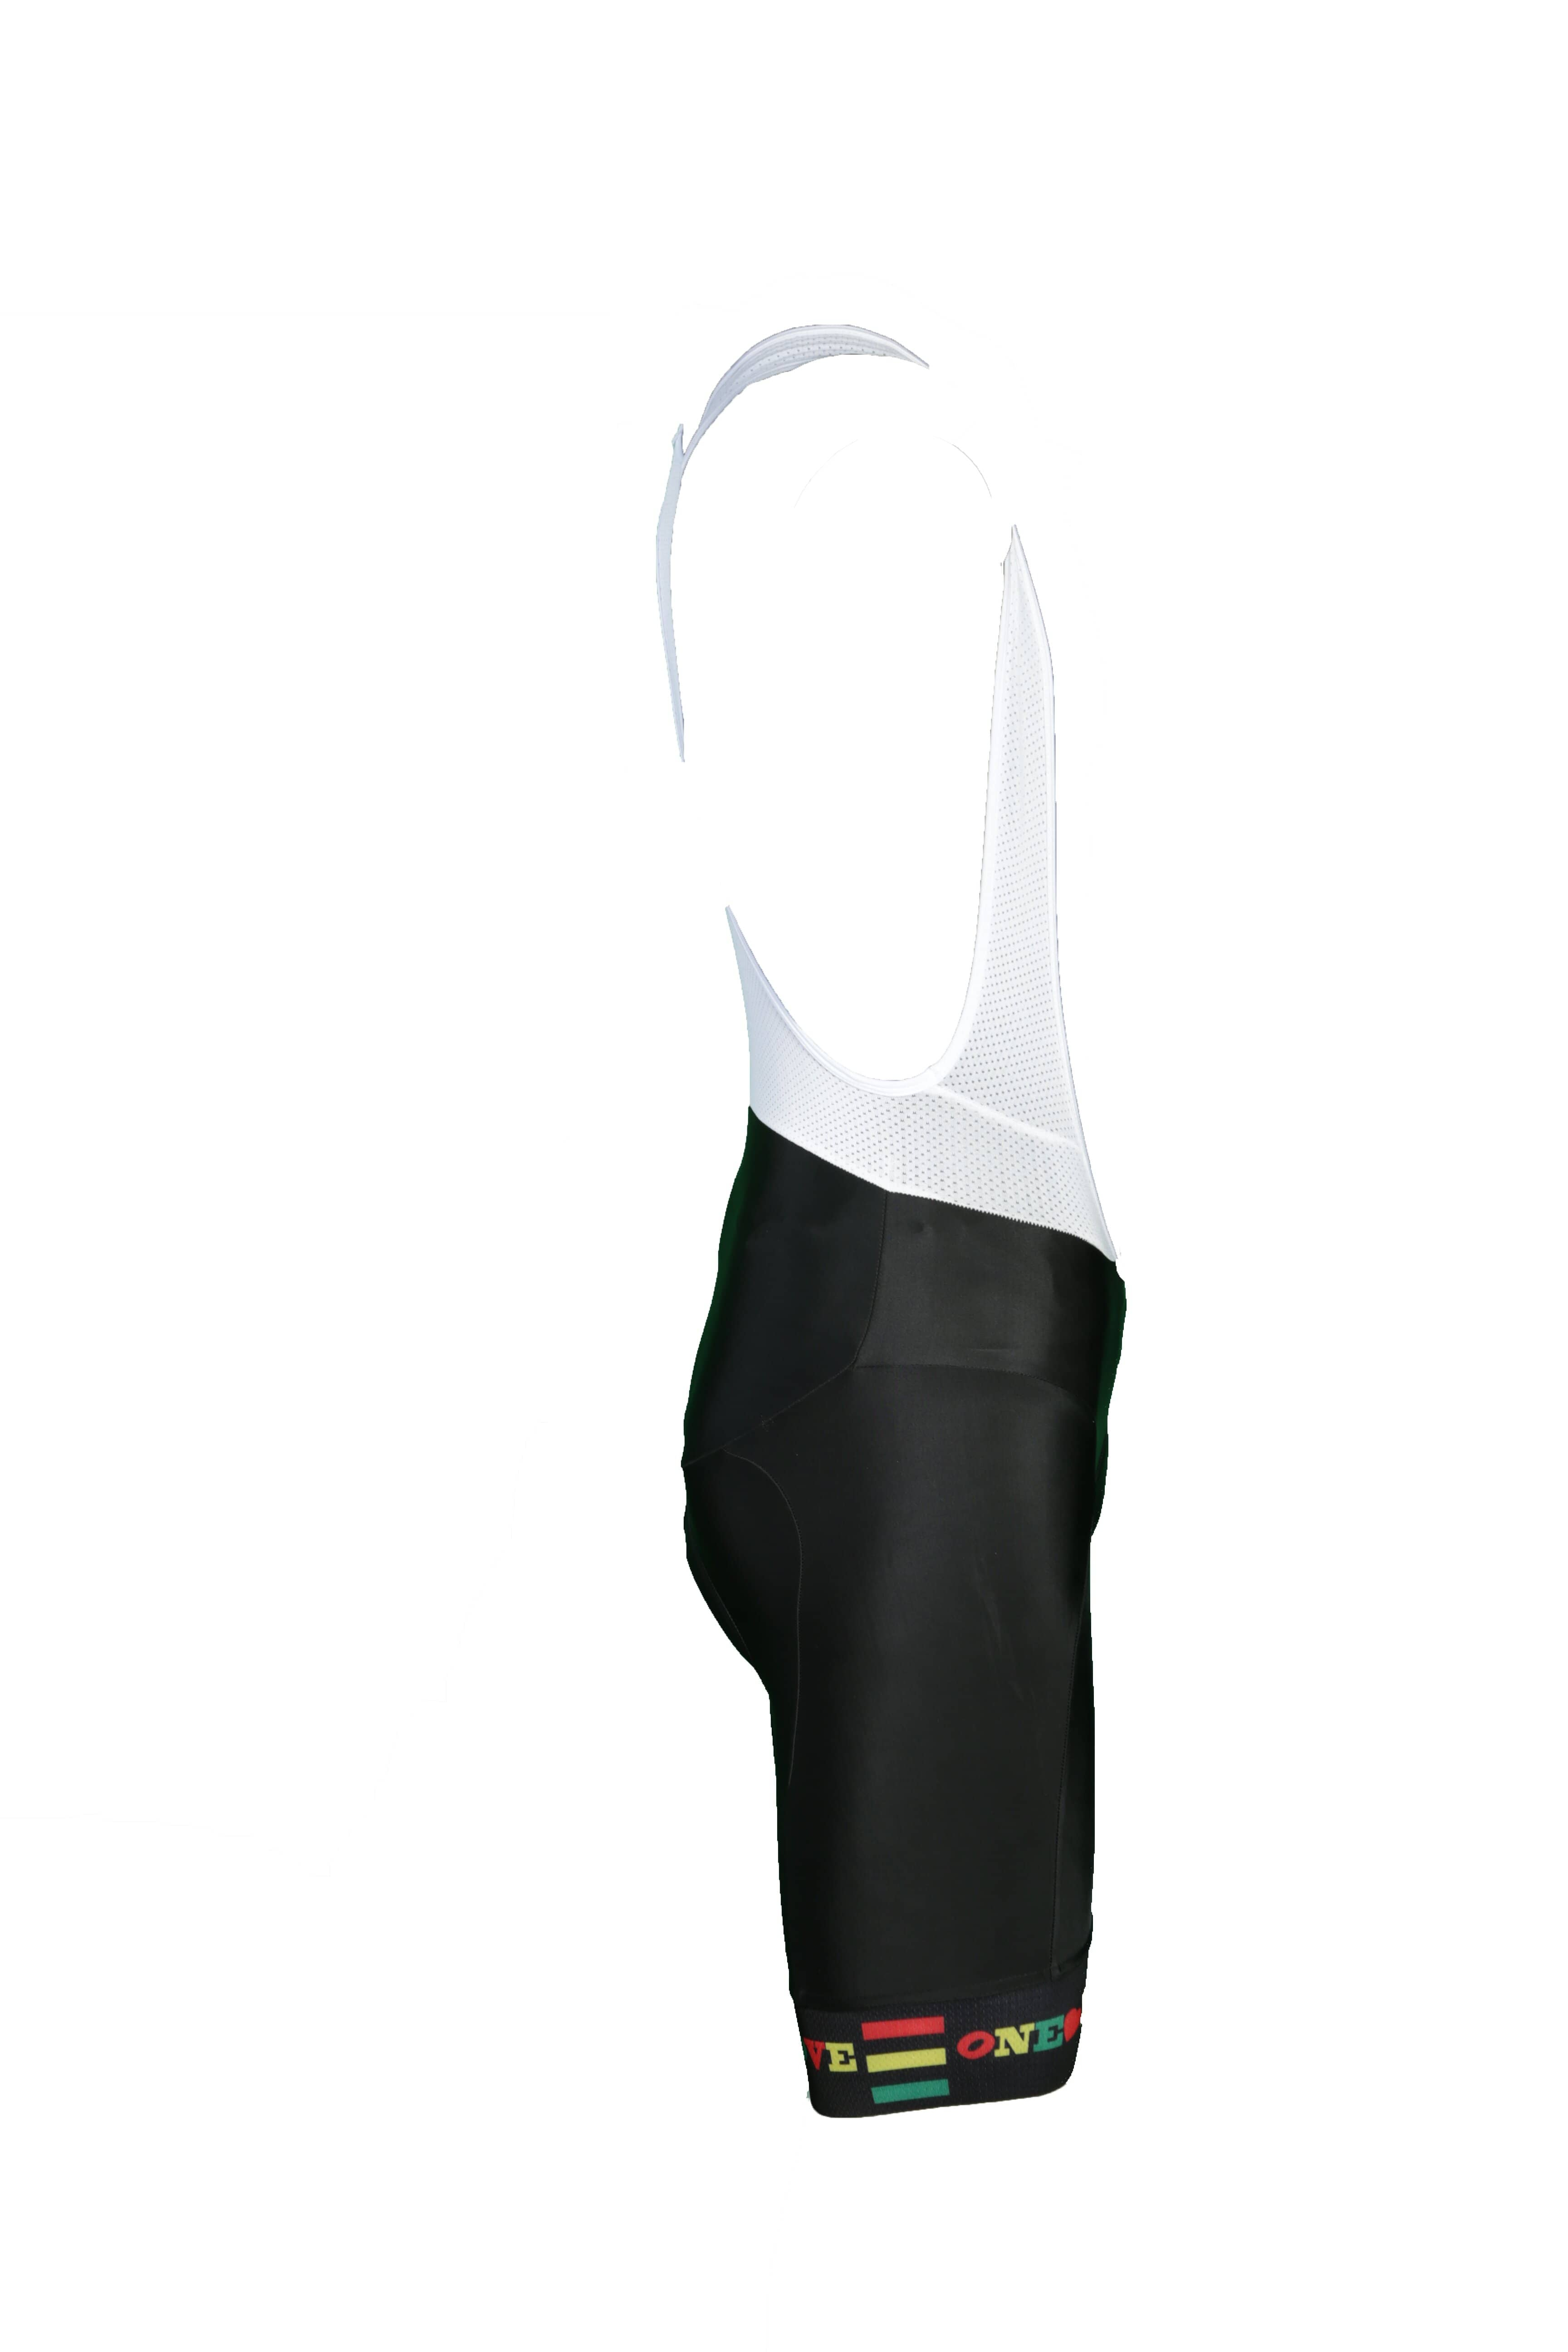 Black Elite Bib Shorts- T-strap in back- Womens- white Mesh top- Clearance